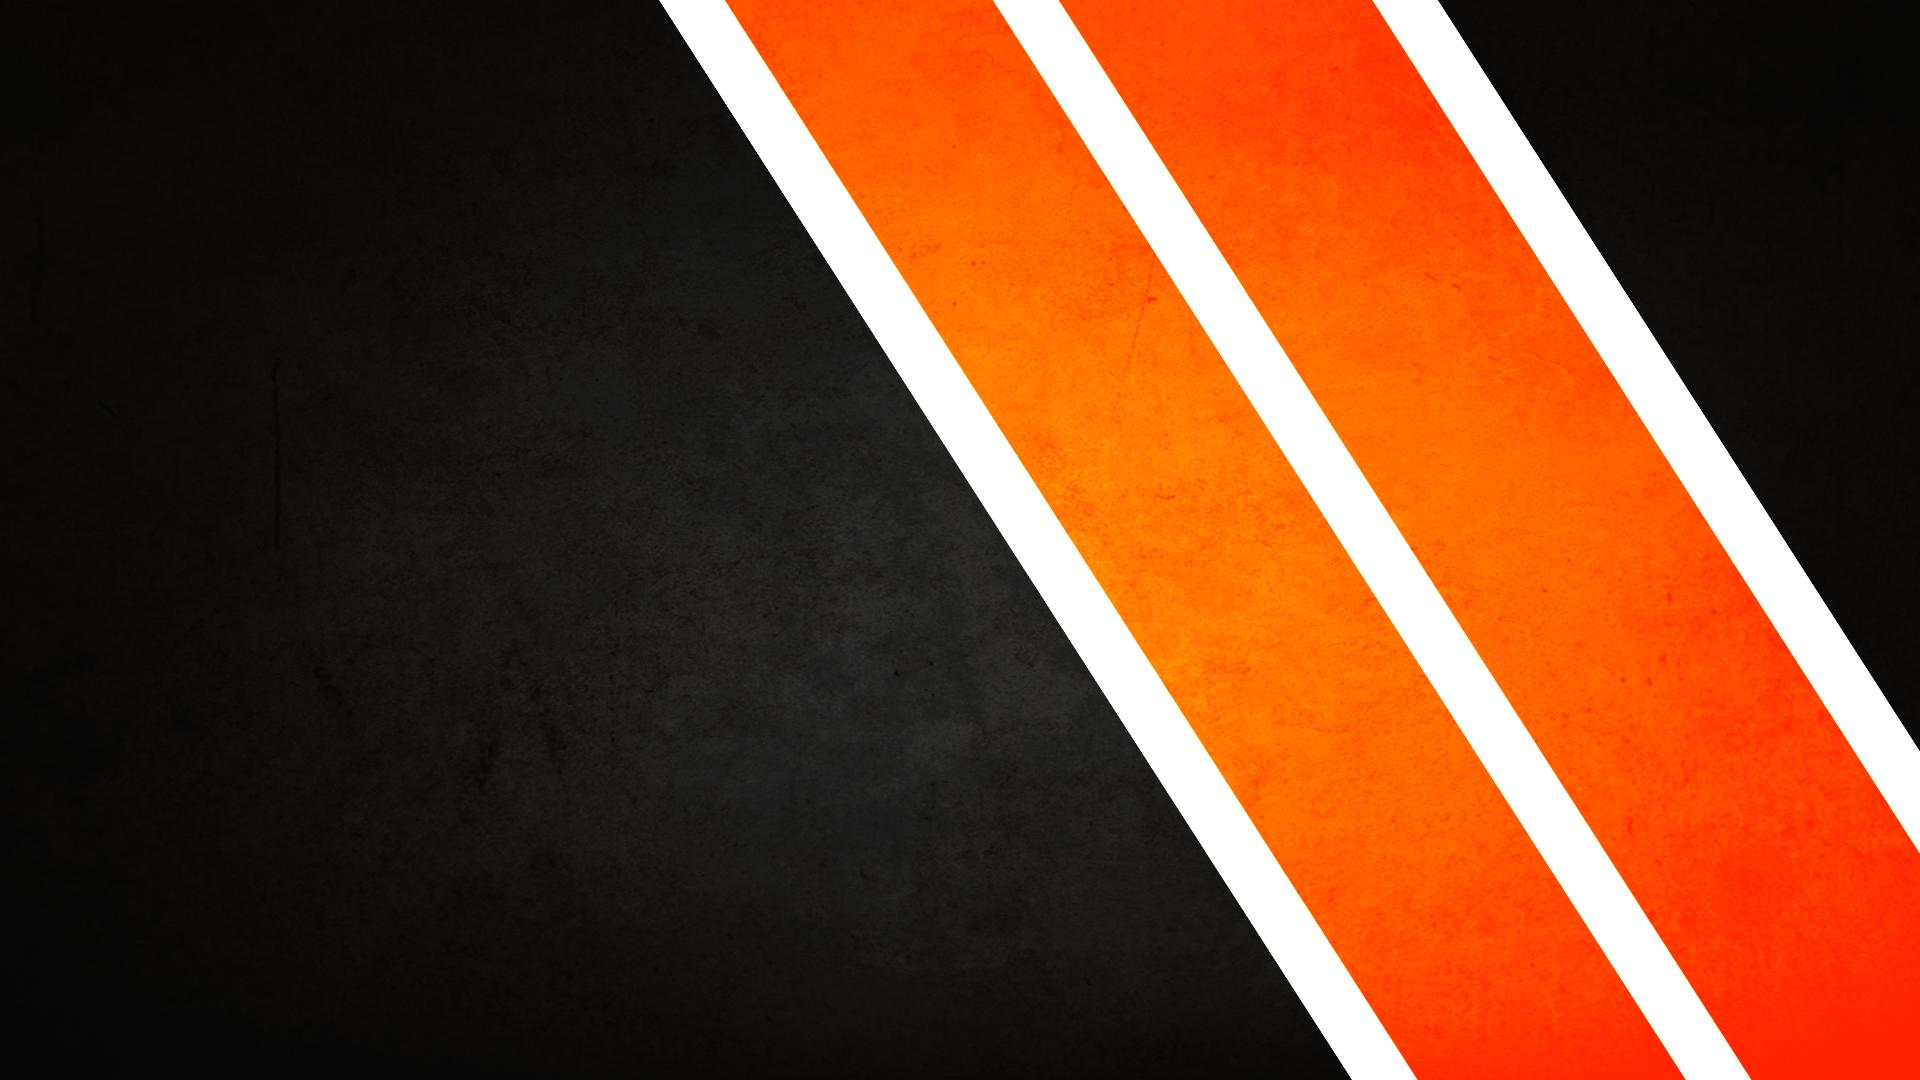 Black White And Orange Wallpaper